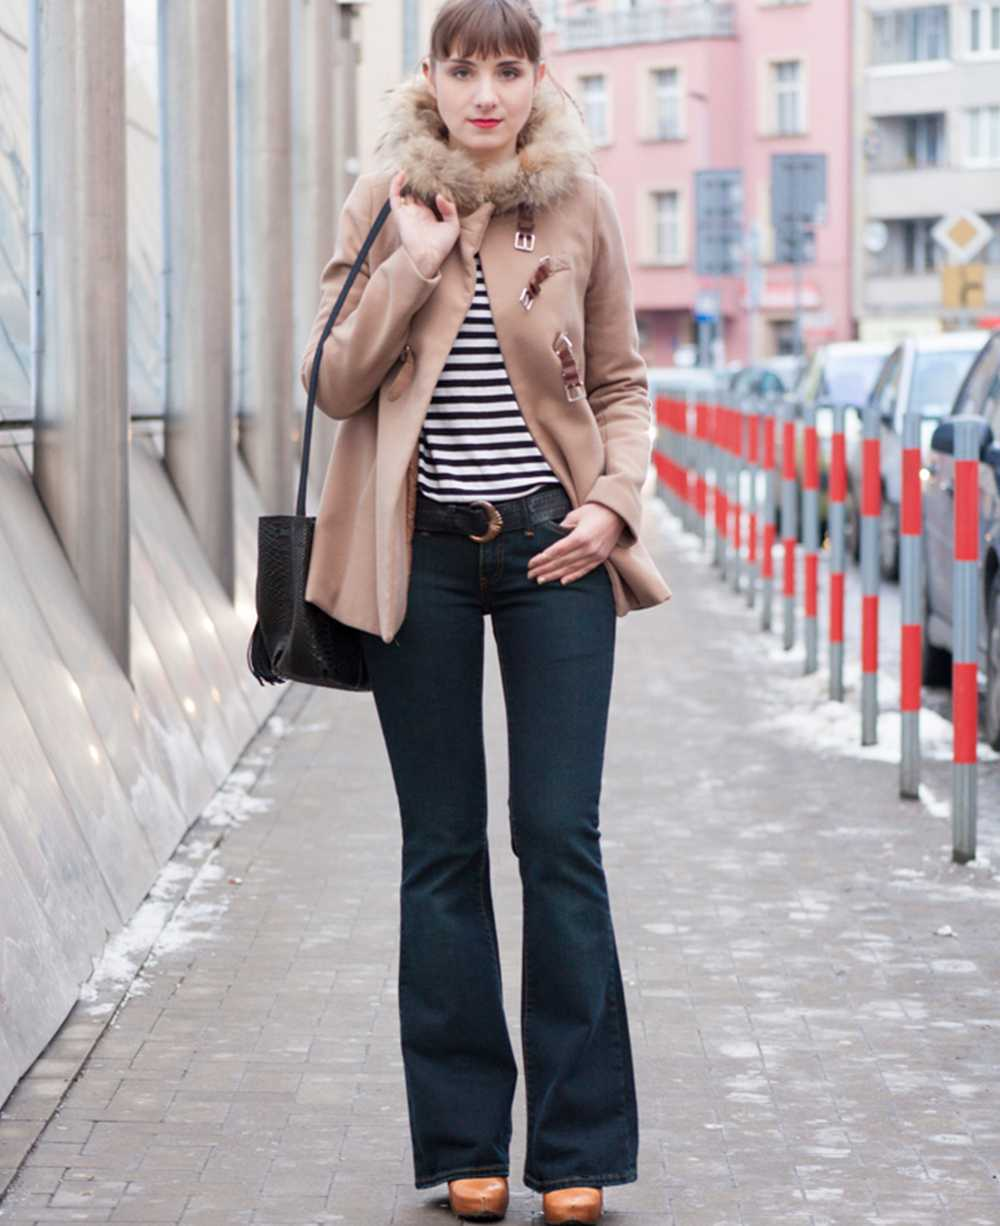 Bootcut jeans outfit by Jeanie Monika